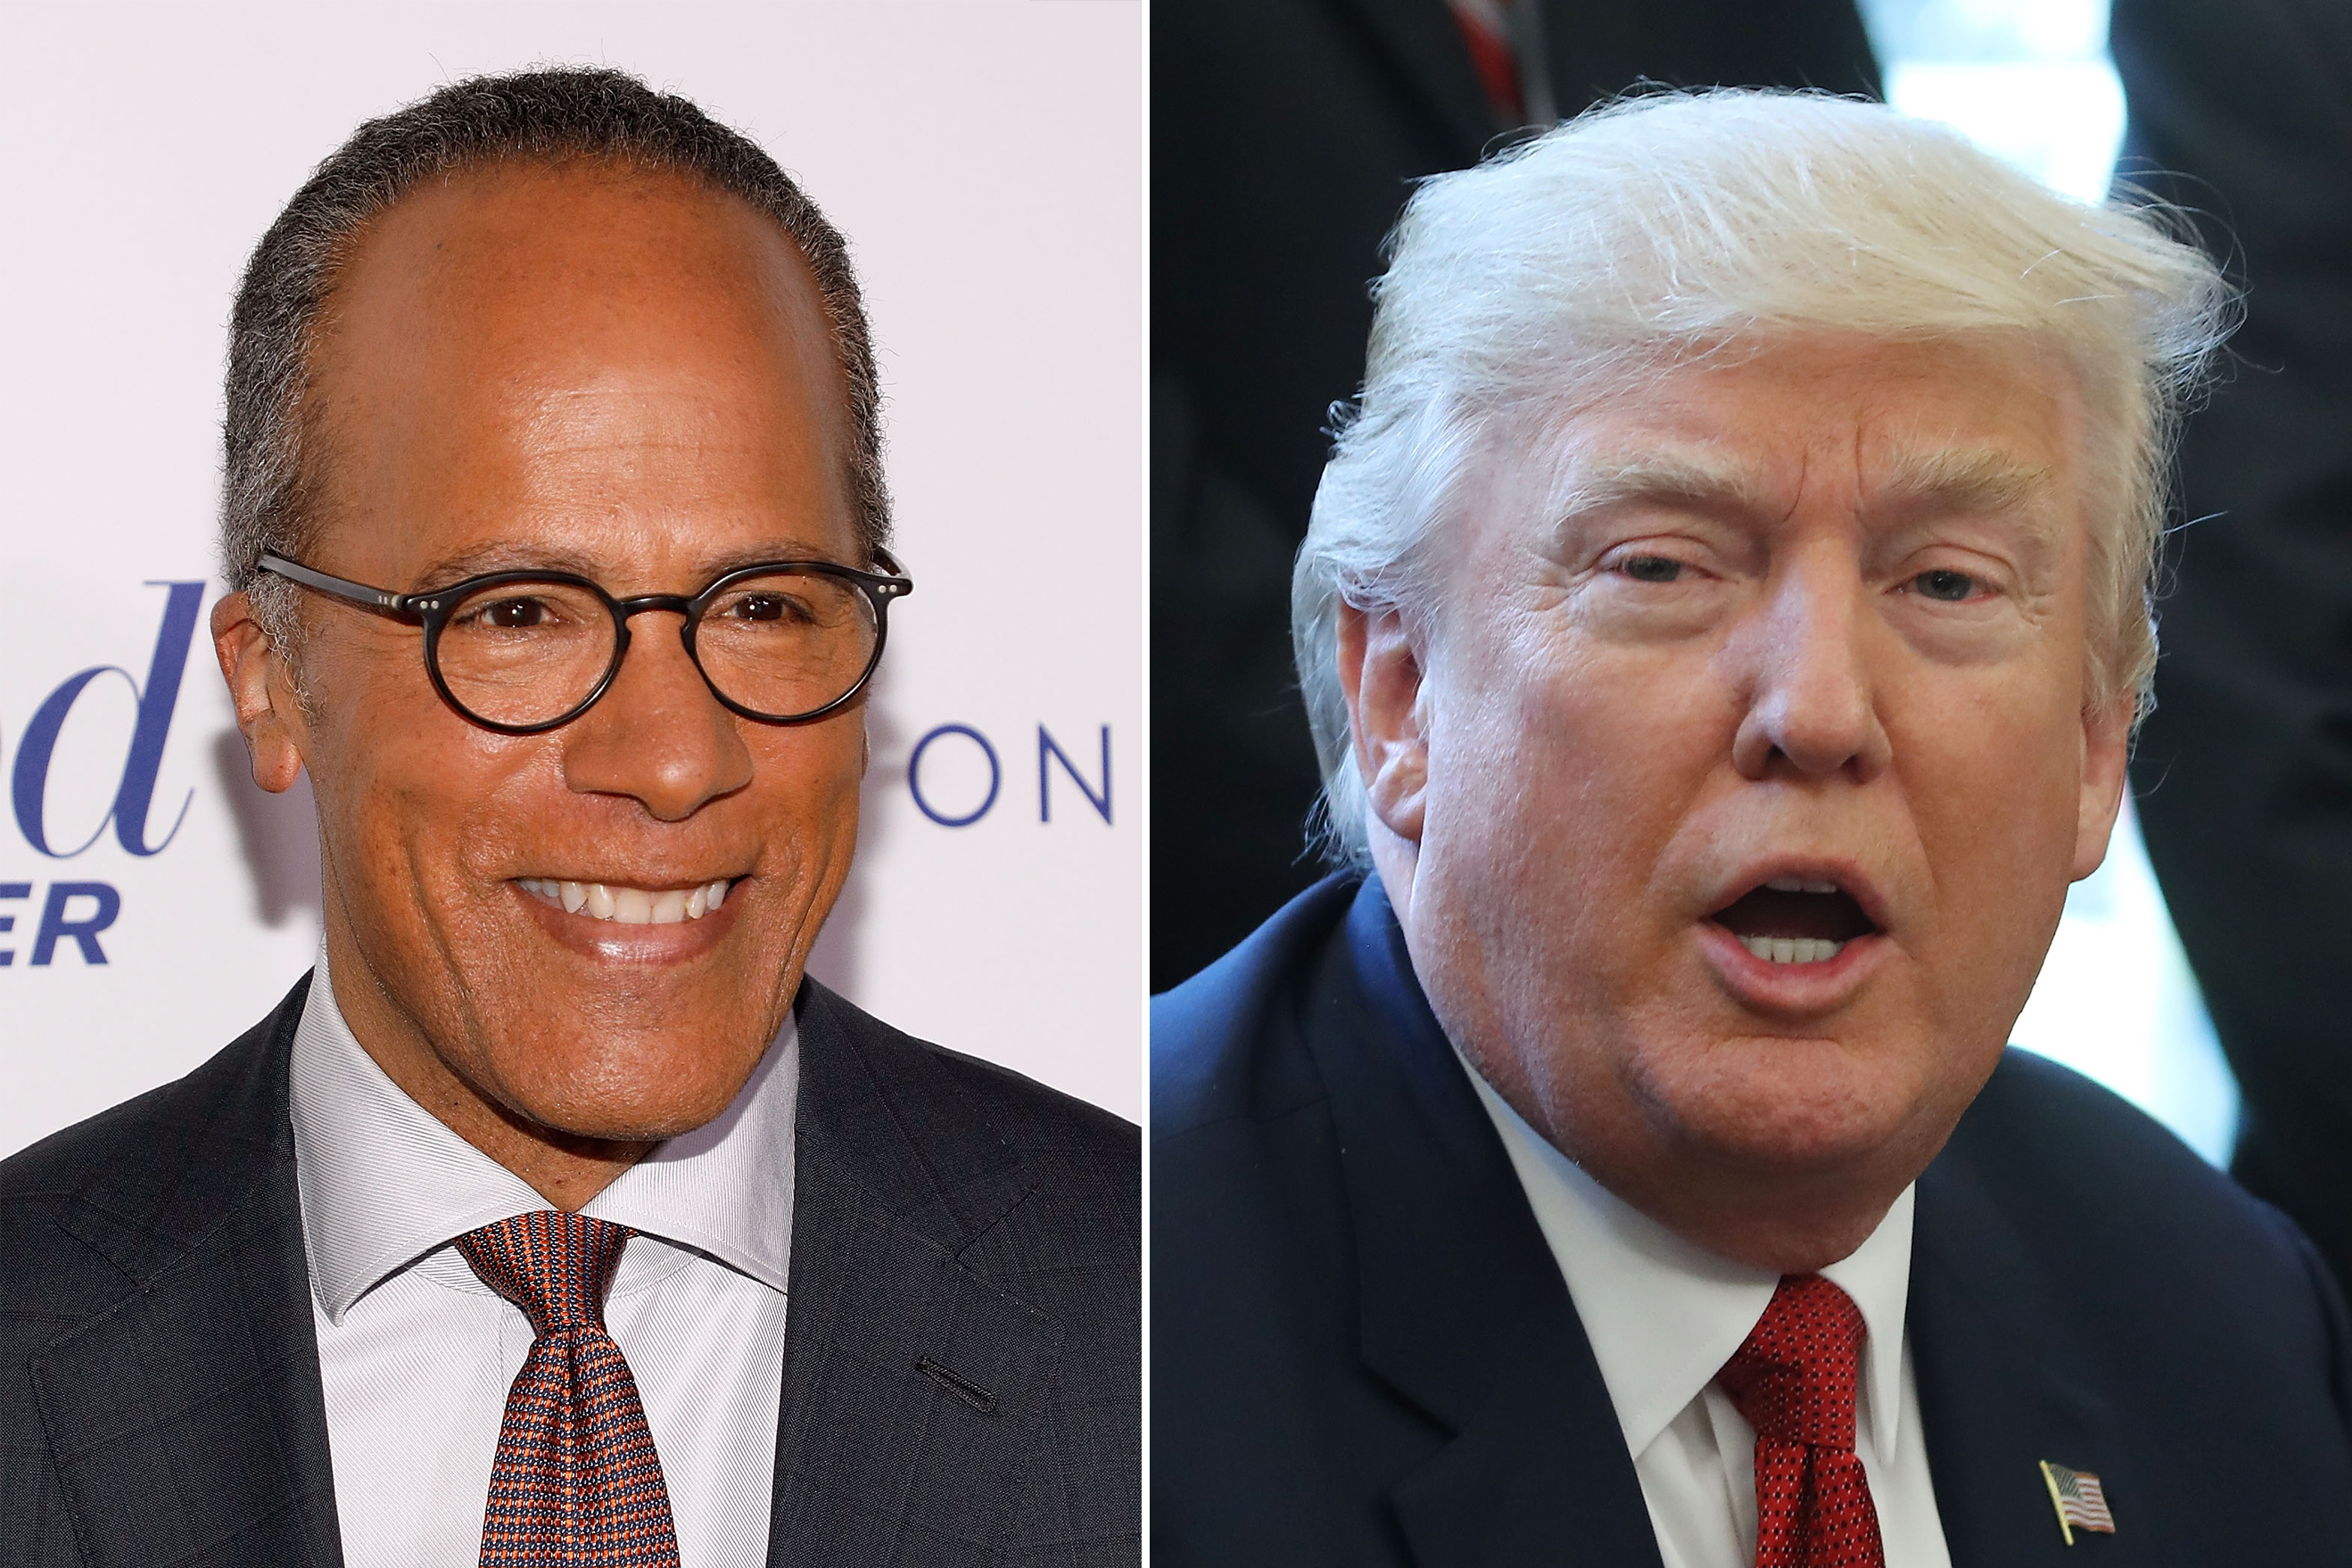 Lester Holt and Donald Trump.